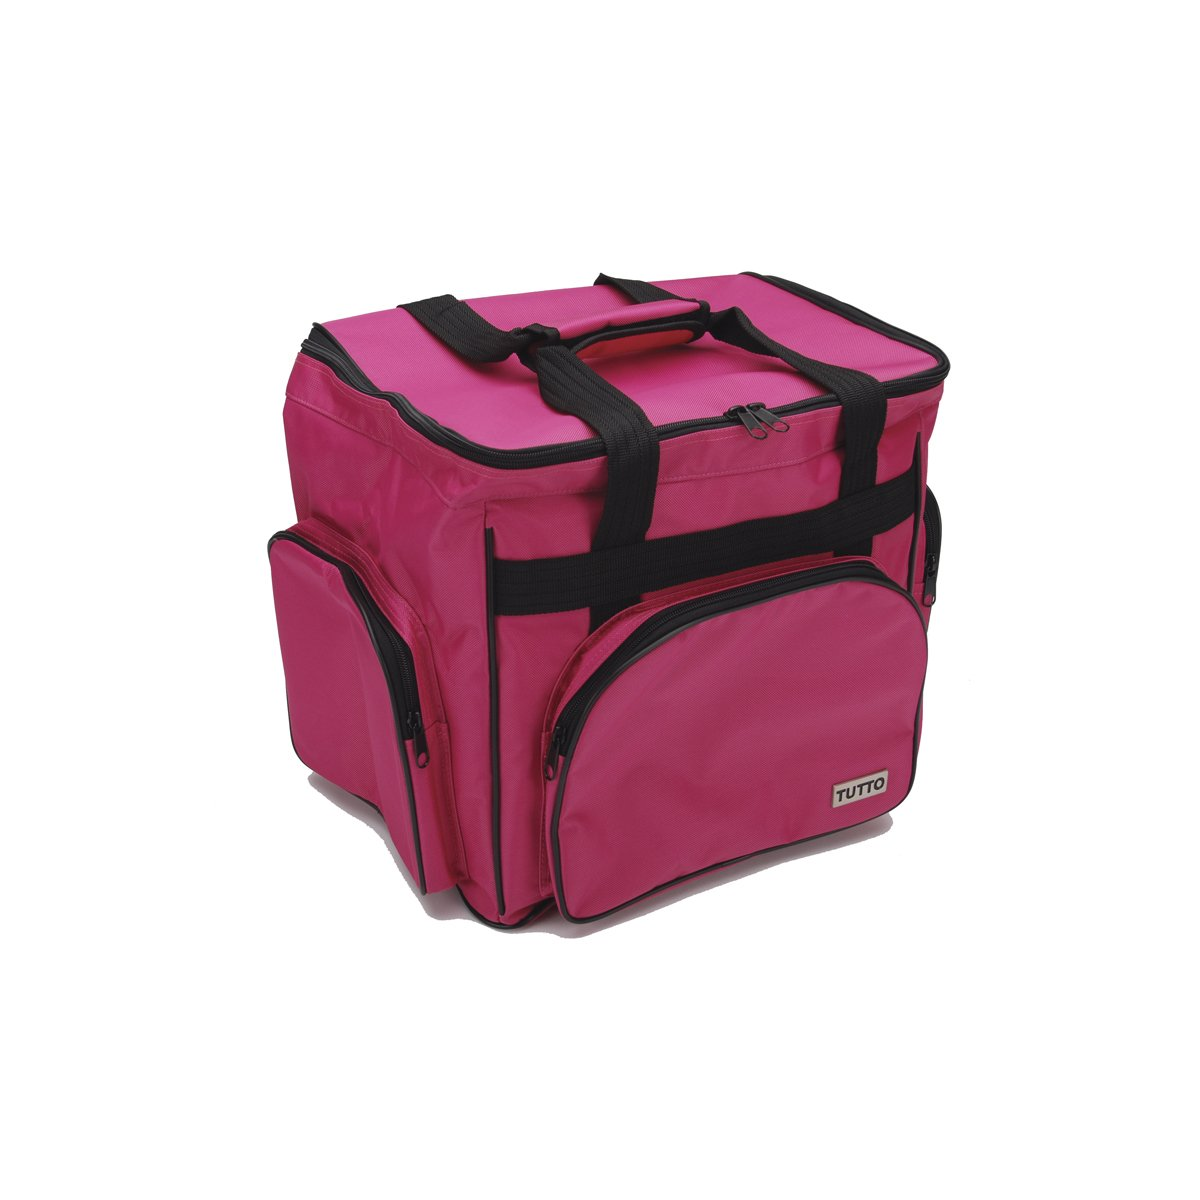 Tutto Serger & Accessory Bag-14.5''X14.5'' Pink by Tutto